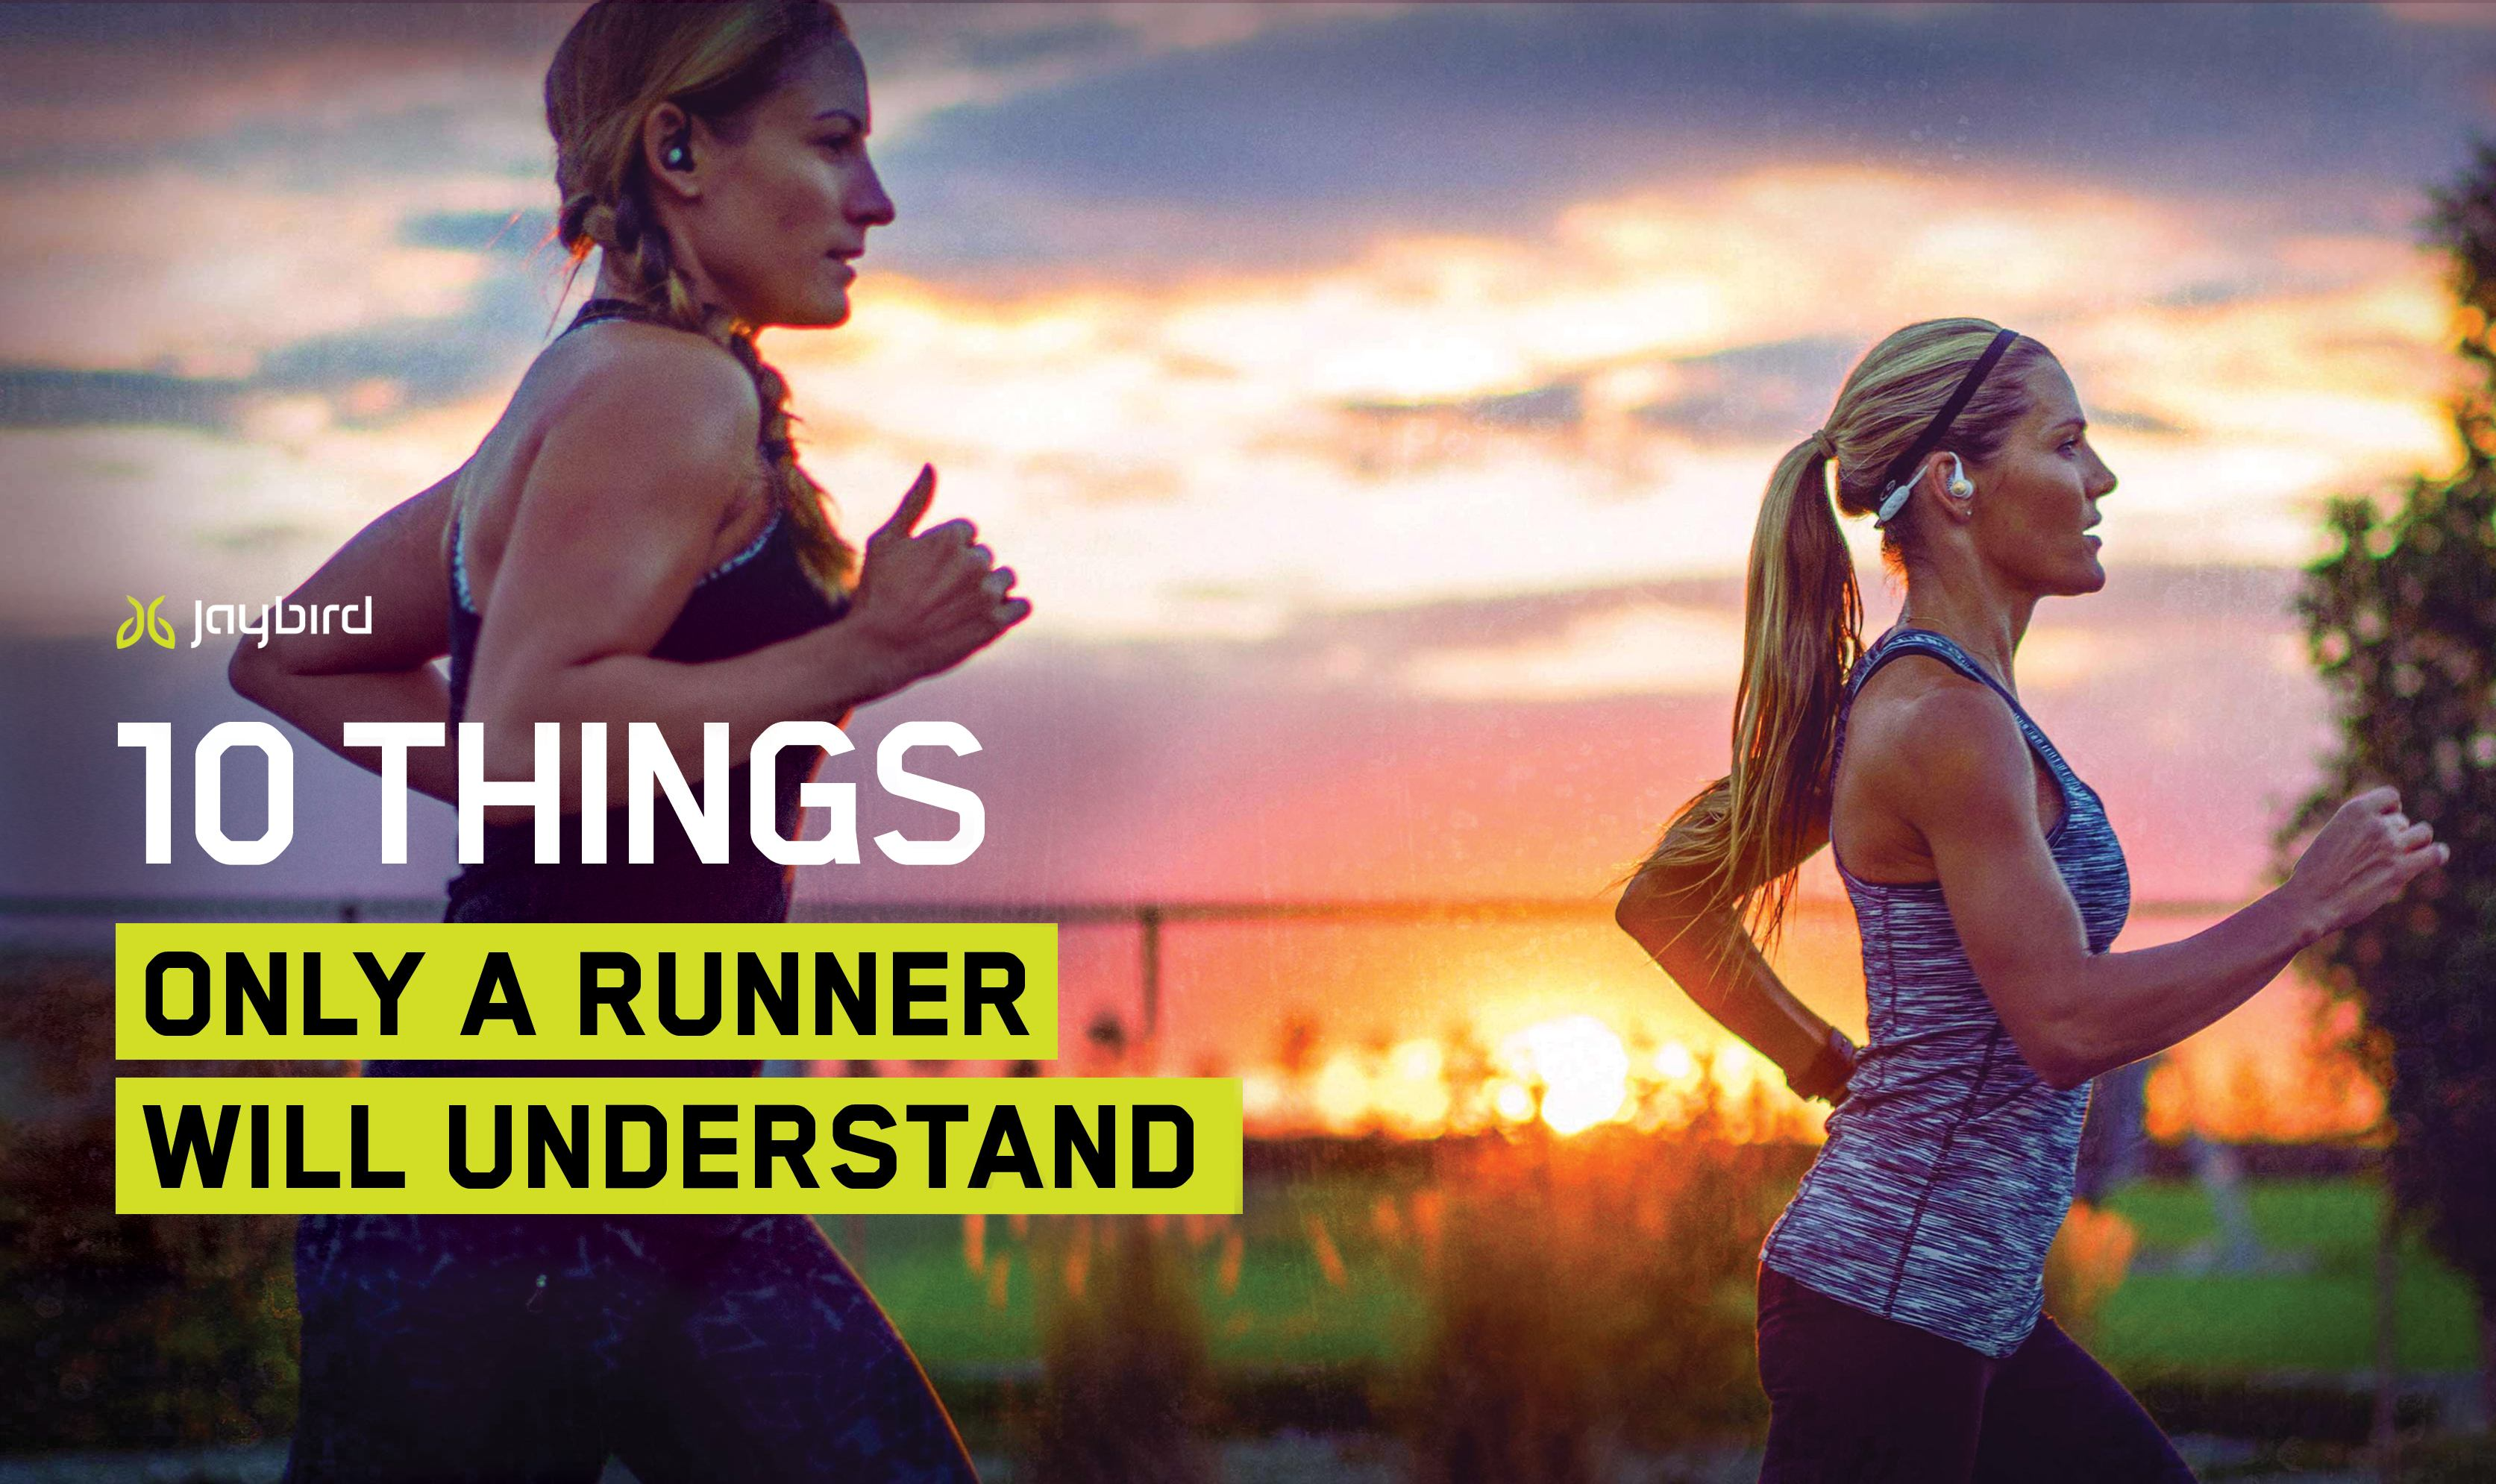 jaybird-sport-blog-10-things-only-a-runner-will-understand-image-20161118